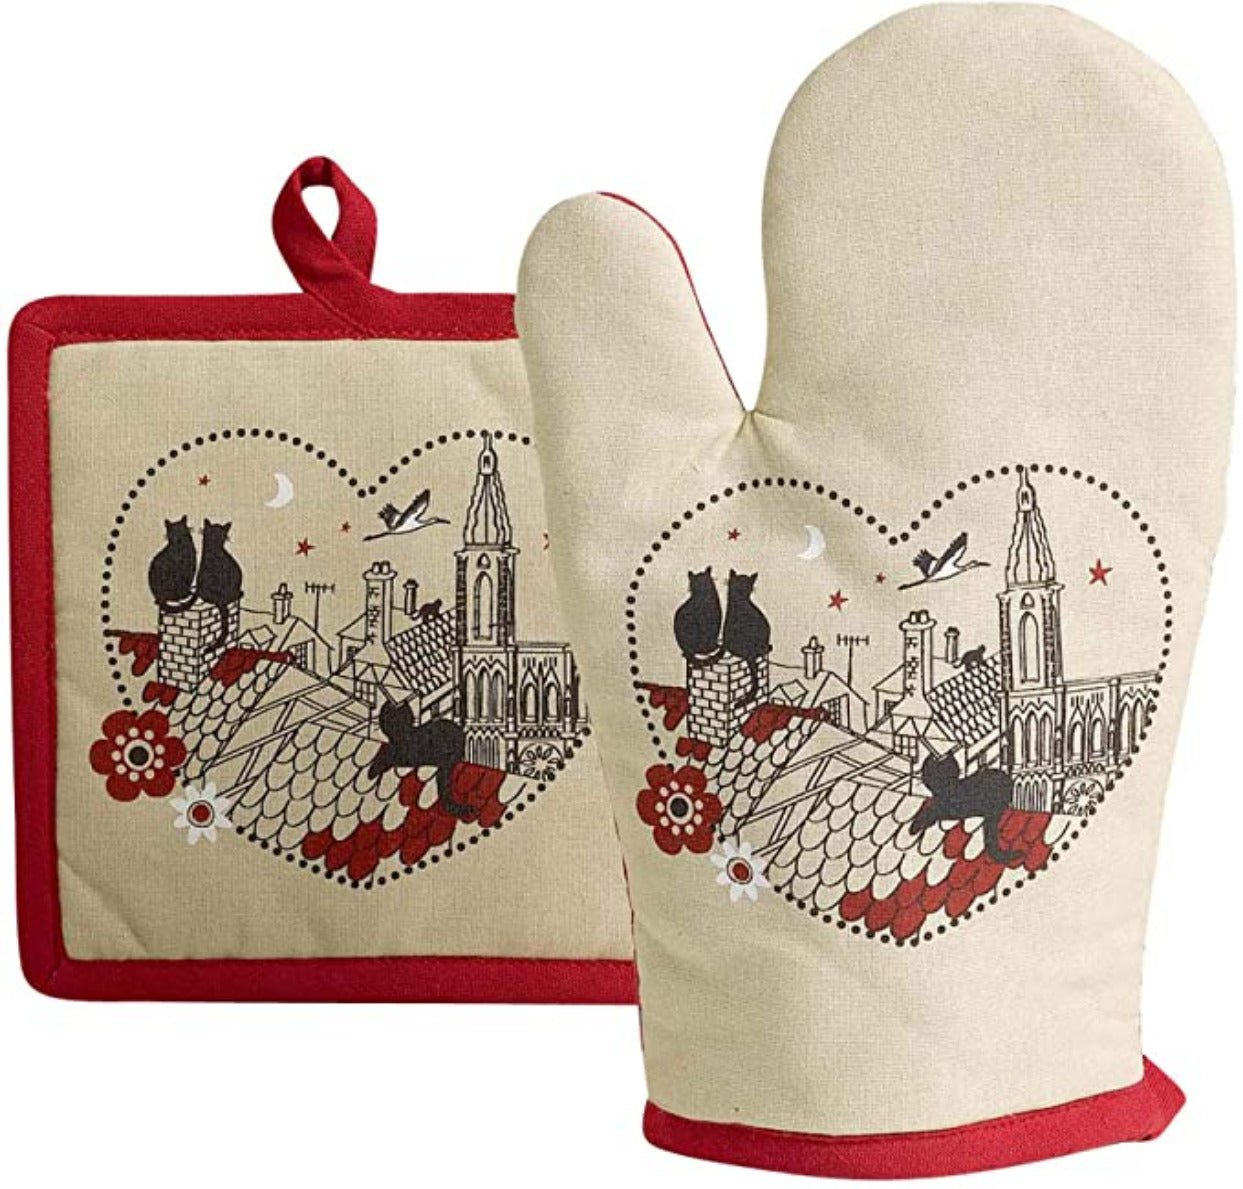 Duo of Black Cats in a Heart Beige & Red Oven Glove Gauntlet & Matching Pot Holder